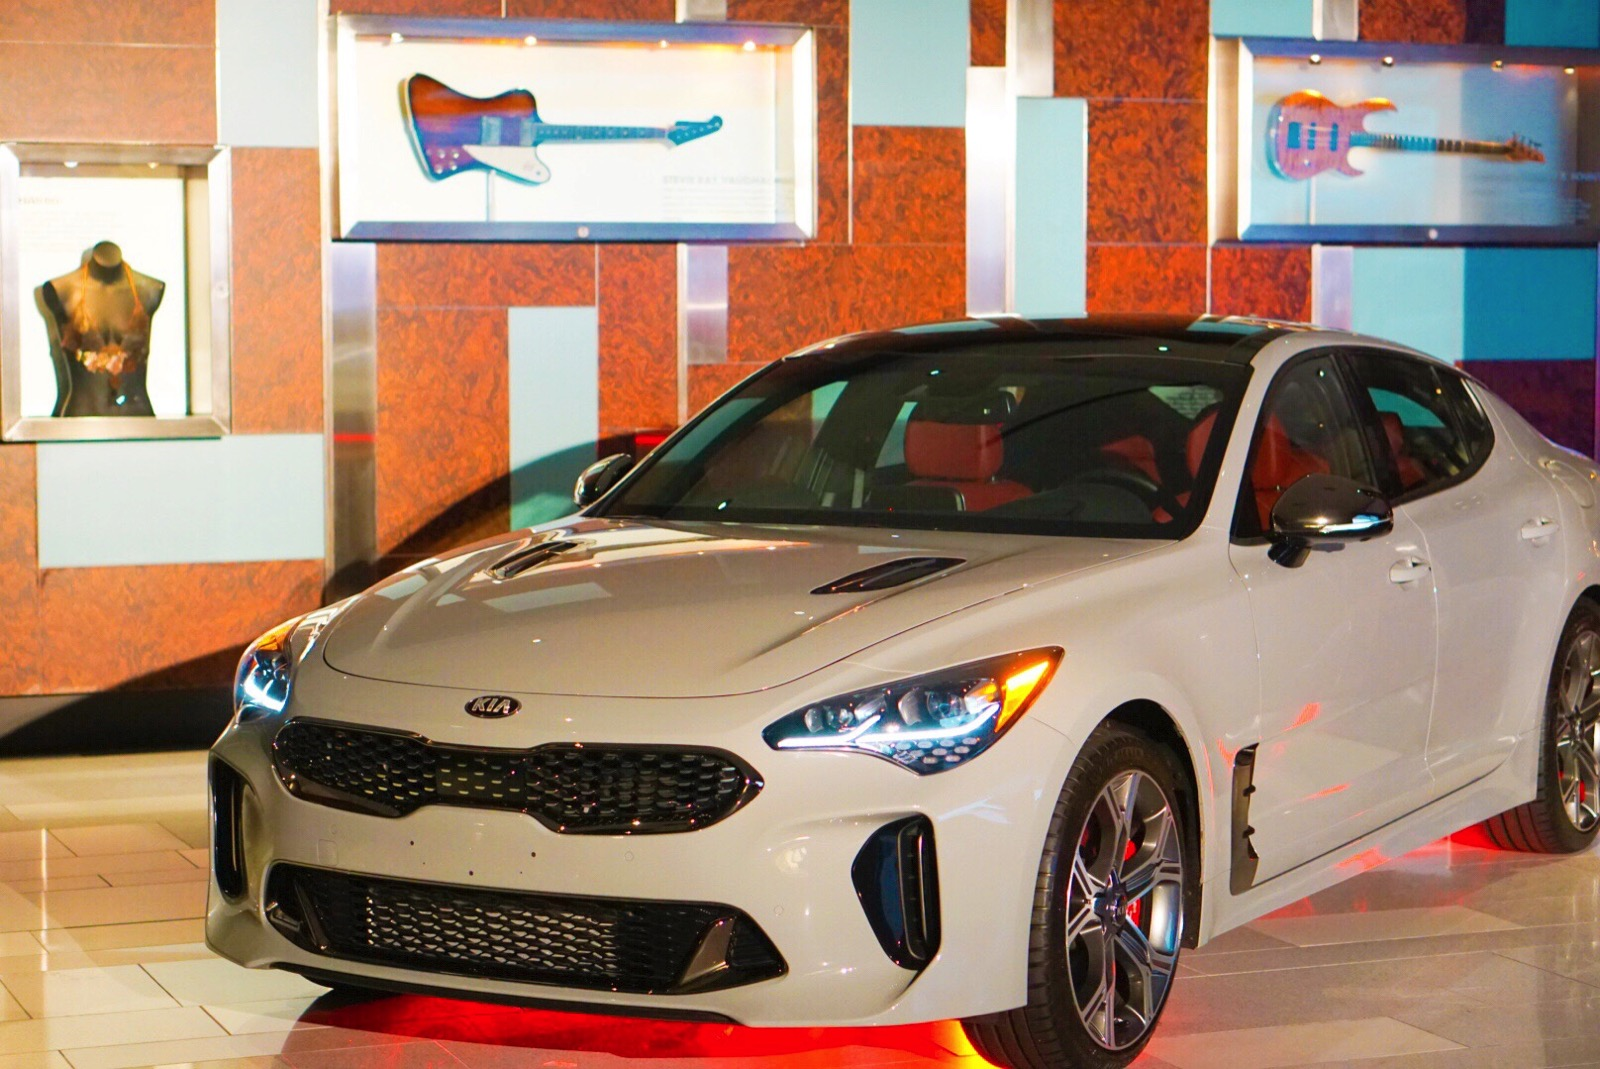 Kia Cars + Influencers & Bloggers Take Over San Diego for the #TheNewKia Ride and Drive 2018 Event -- Misty Nelson, frostedblog, @frostedevents